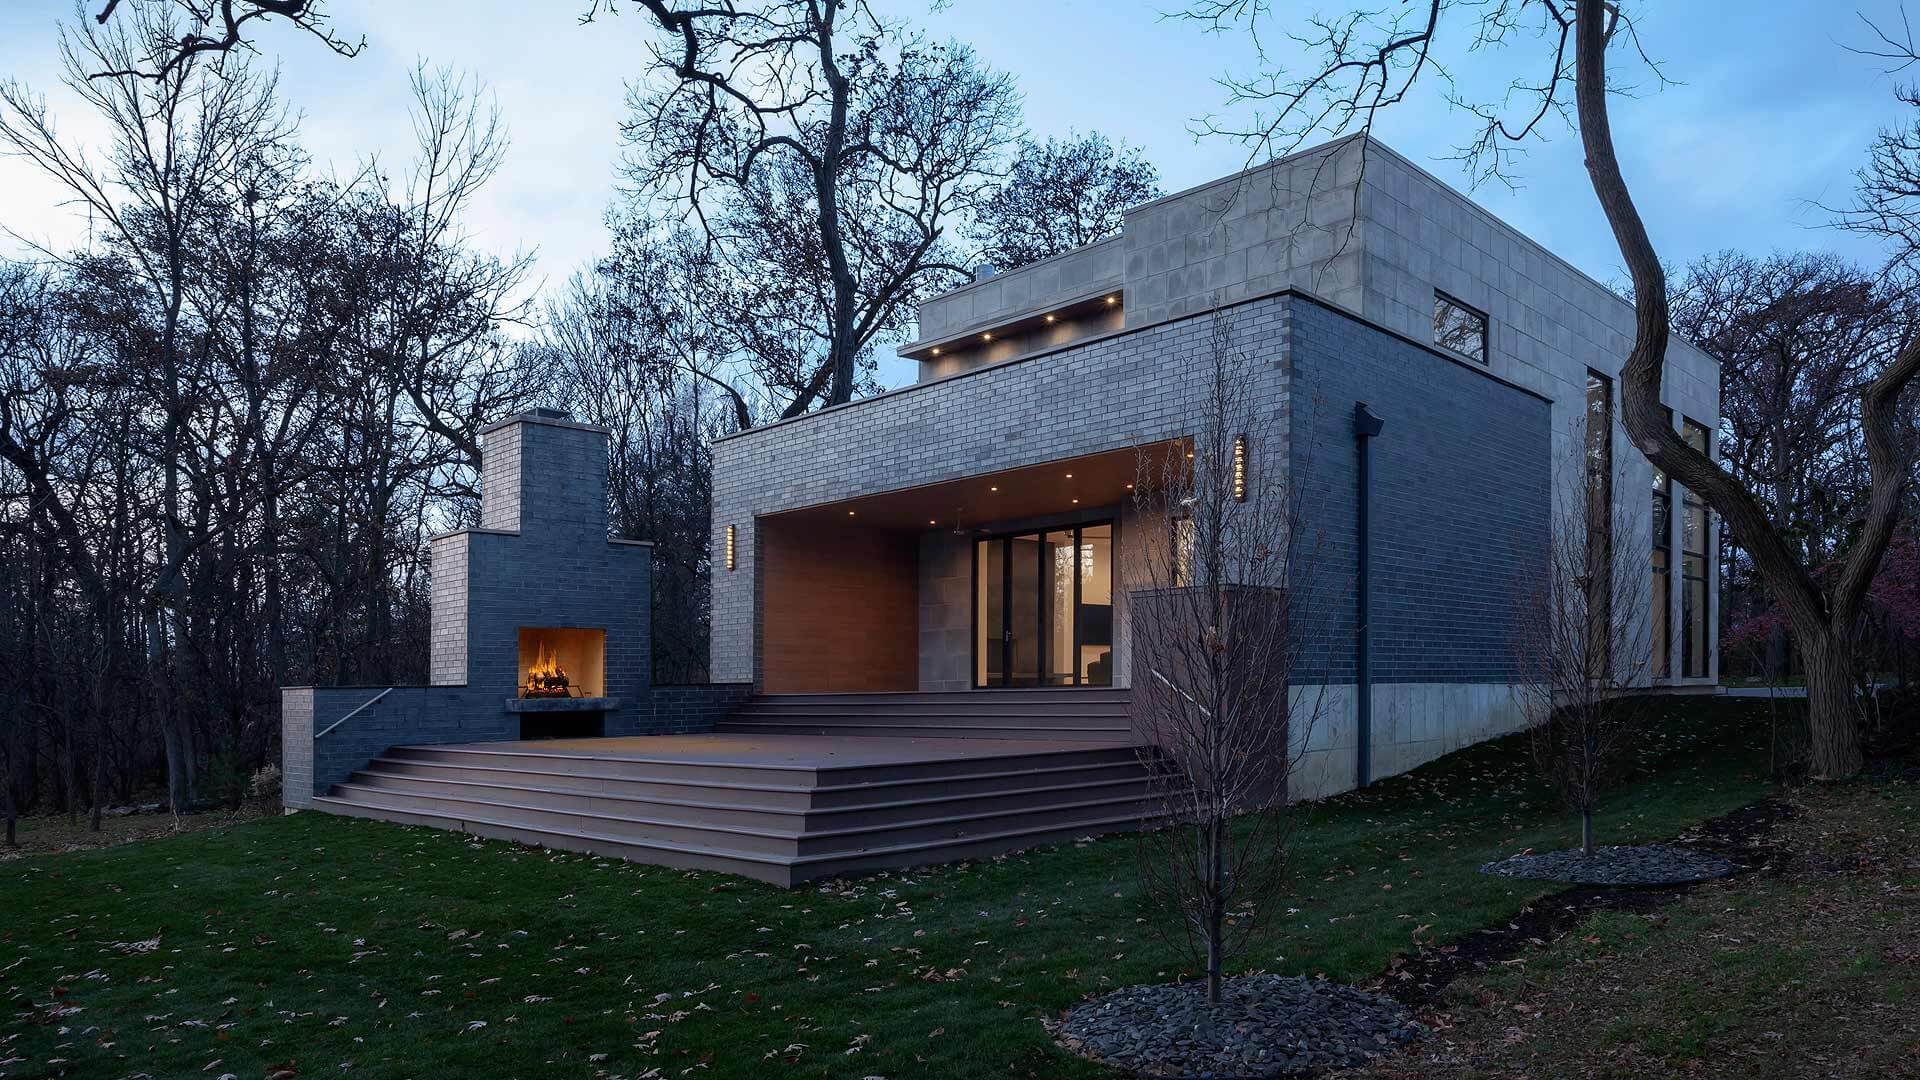 Backyard View shows deck, outdoor fireplace, and covered indoor-outdoor transitional space with Nanwall sliding, bifold exterior glass doors and roof deck - Minimalist Modern - Chicago, Illinois - HAUS | Architecture For Modern Lifestyles, Christopher Short, Indianapolis Architect with Joe Trojanowski